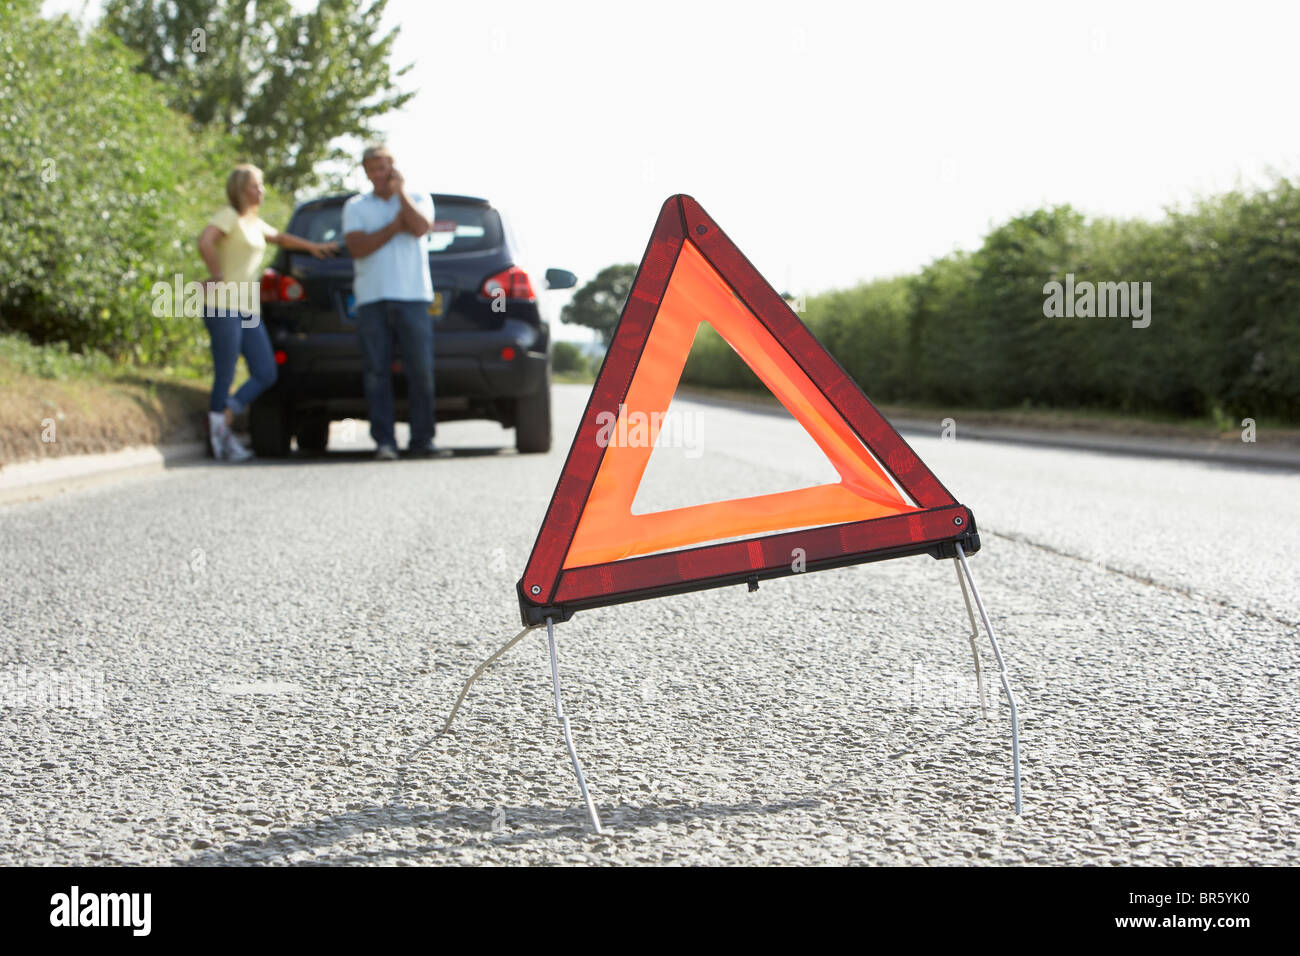 Couple Broken Down On Country Road With Hazard Warning Sign In Foreground - Stock Image